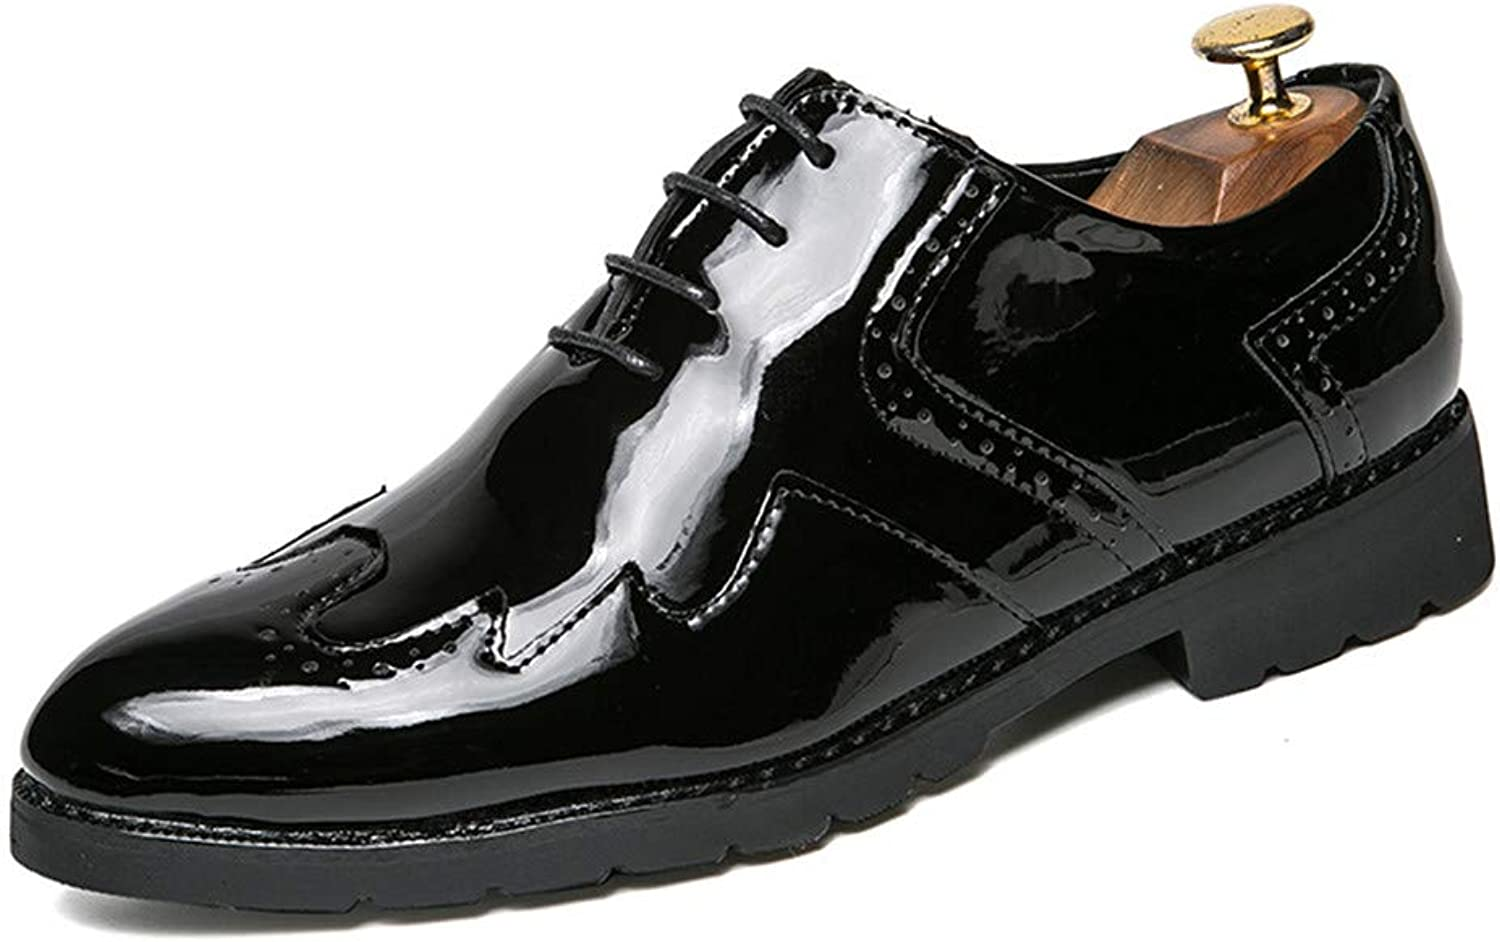 Patent leather Men's casual shoes vents handmade leather lace mirror oxford shoes Formal wear Dress shoes (color   Black, Size   8.5 UK)